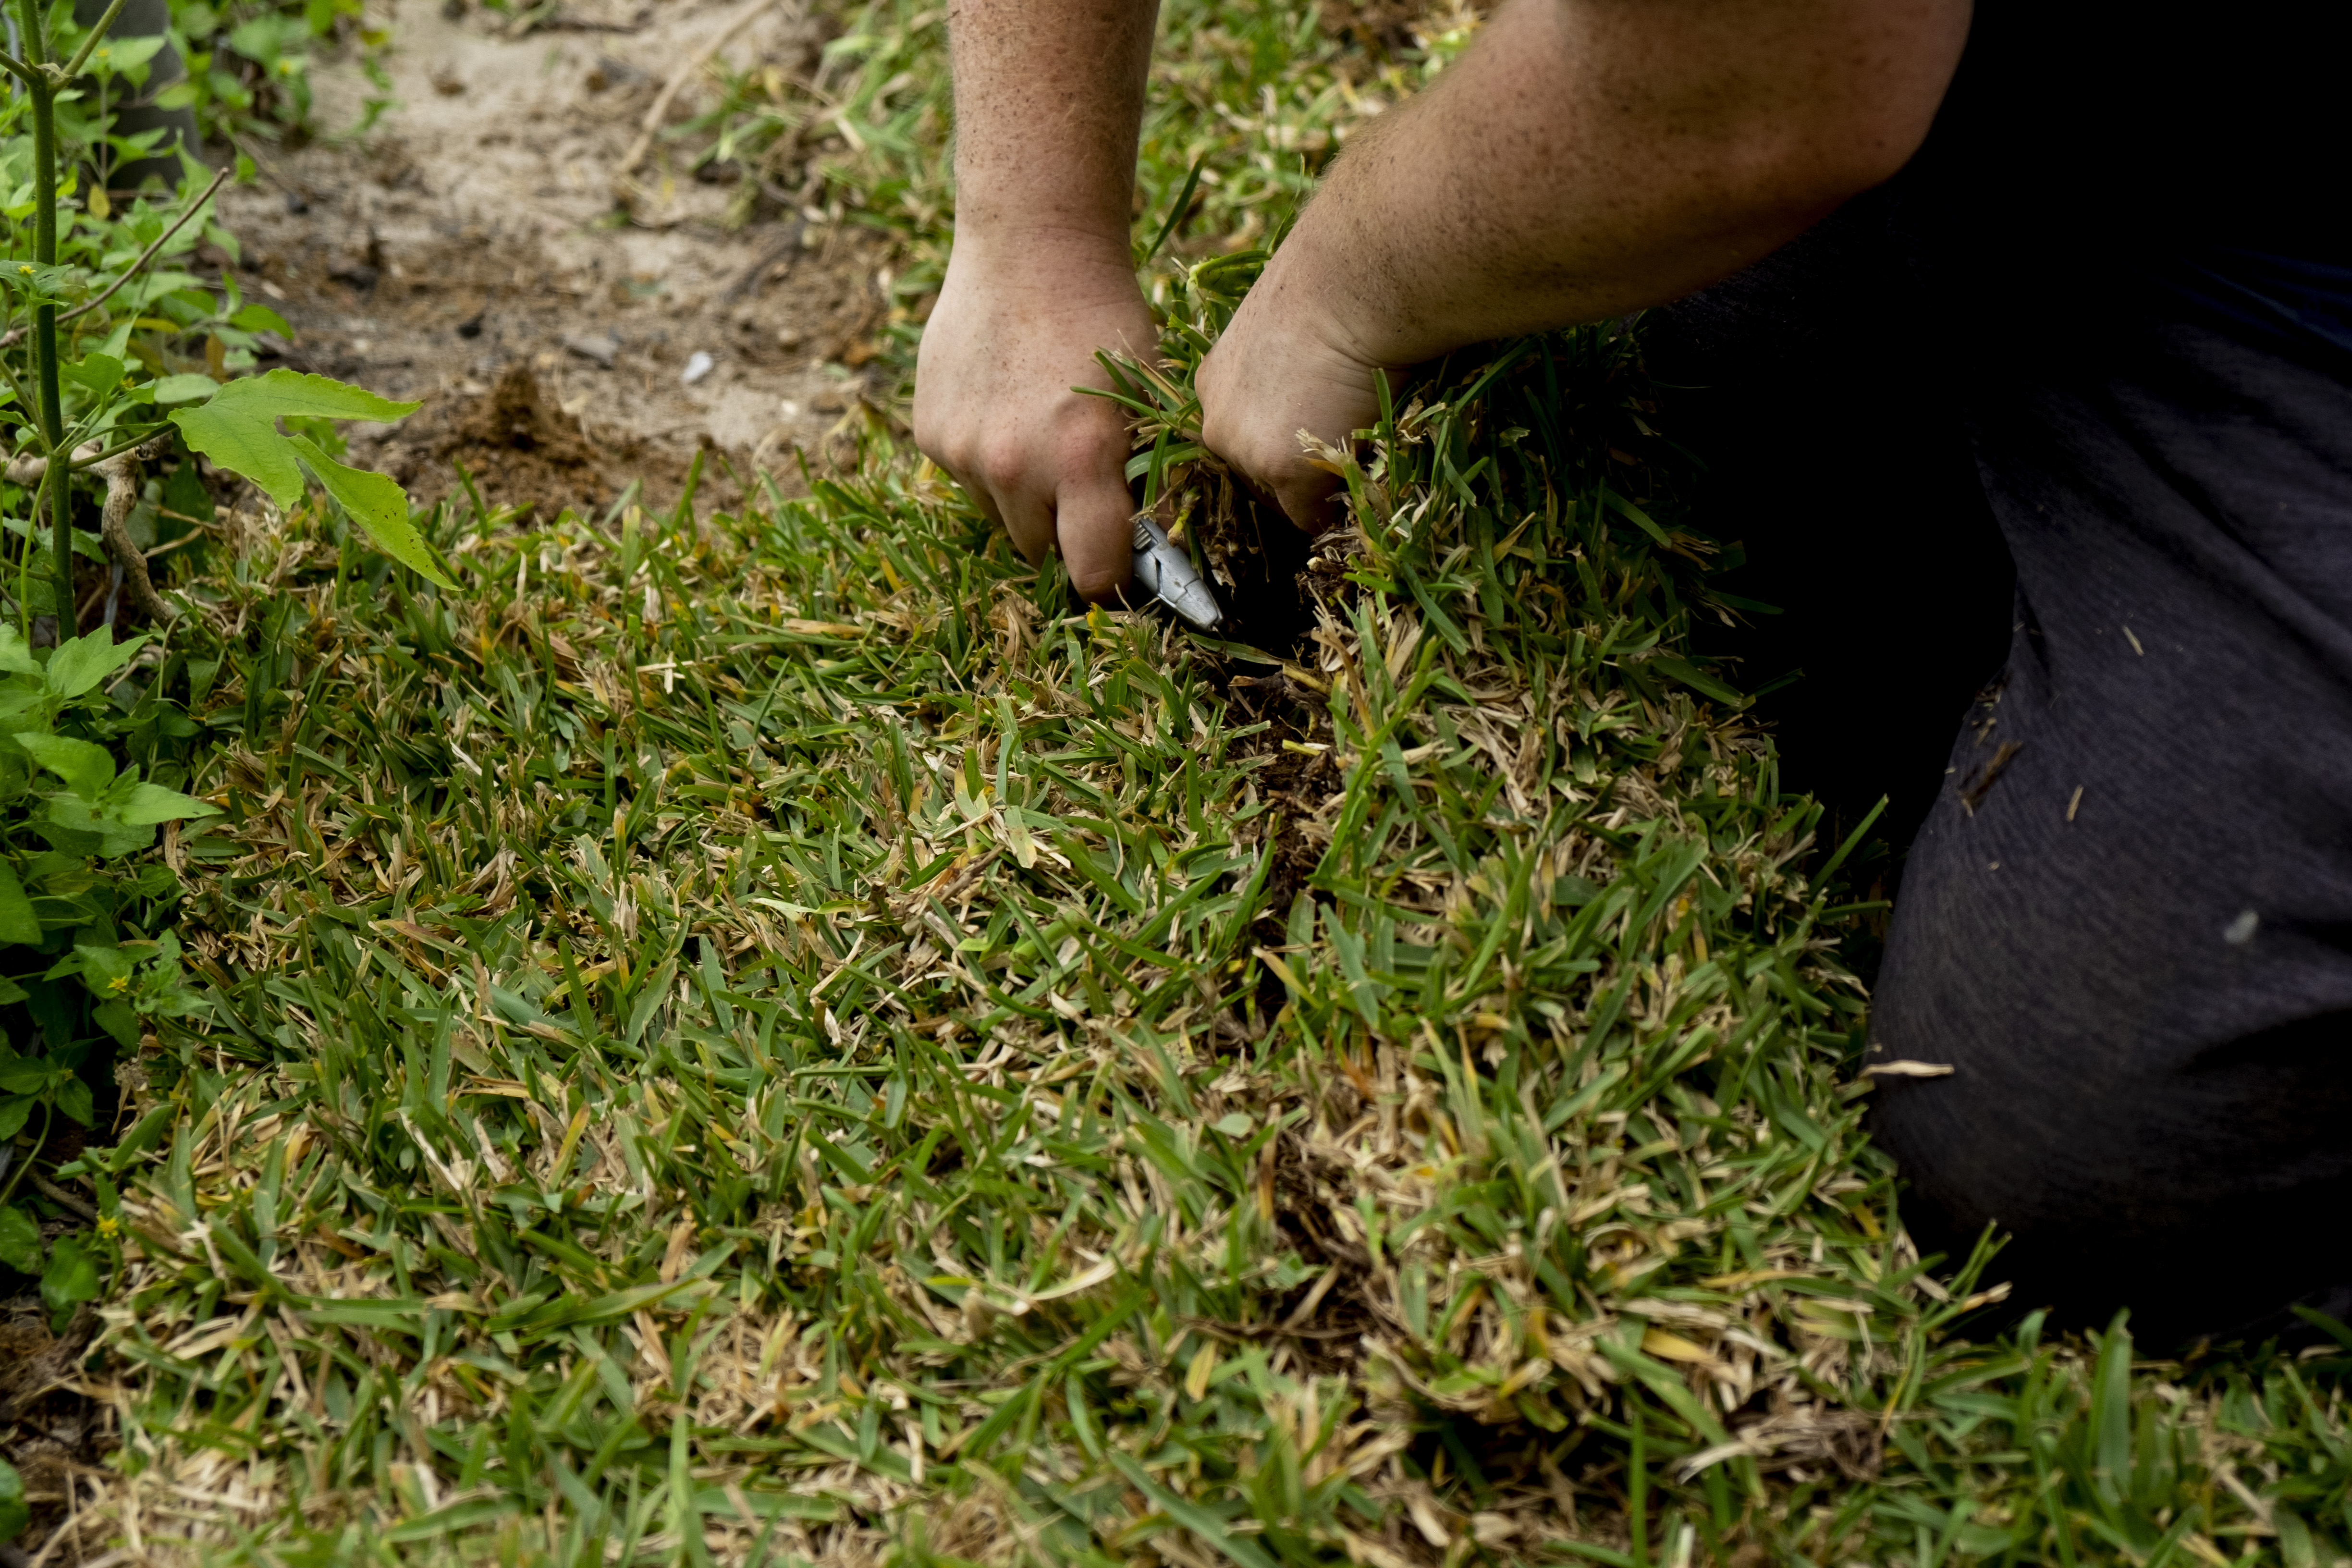 A pair of hands cut grass sod to put in a yard